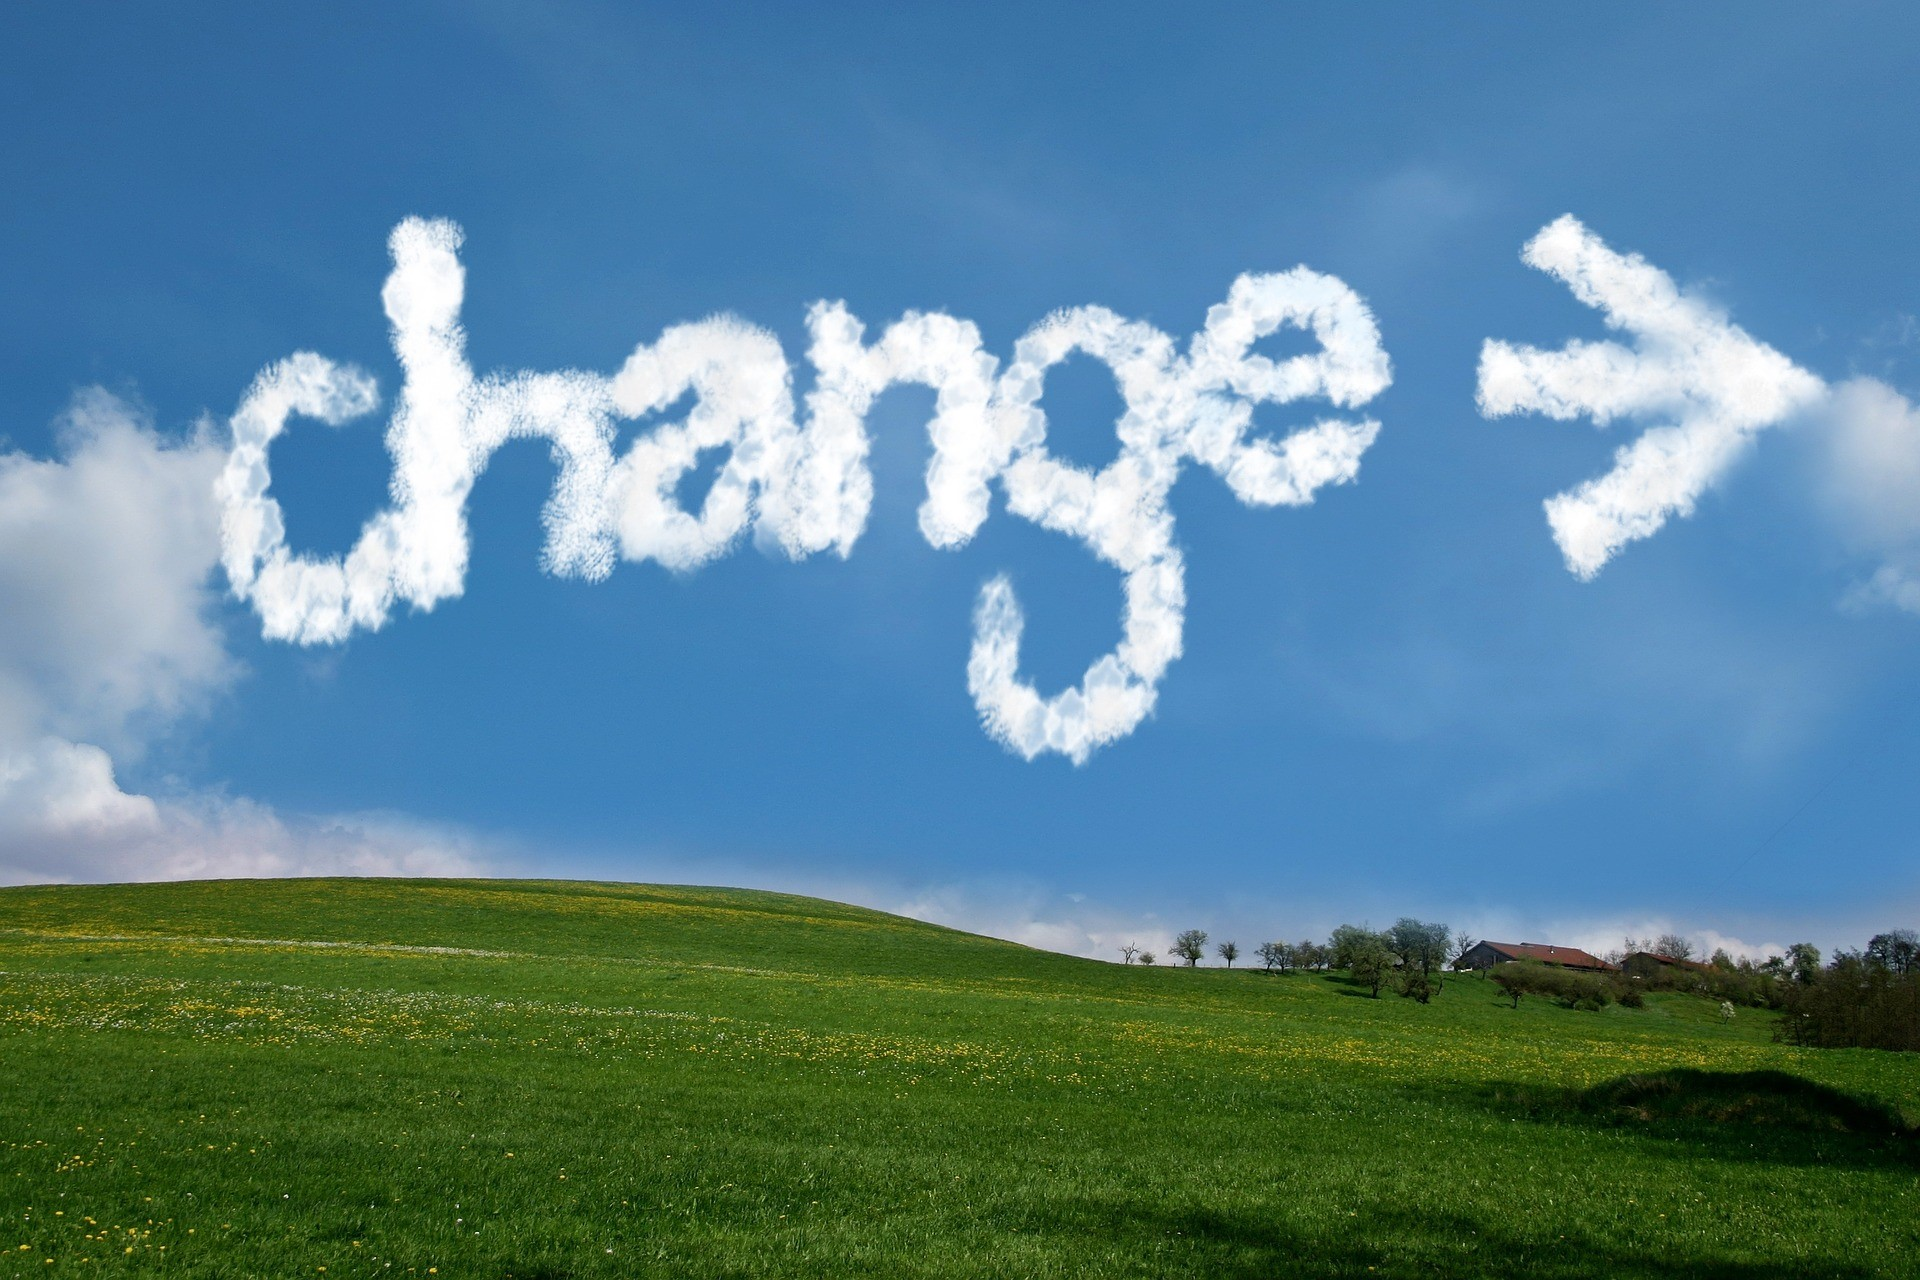 Your commitment to ACTION brings positive changes